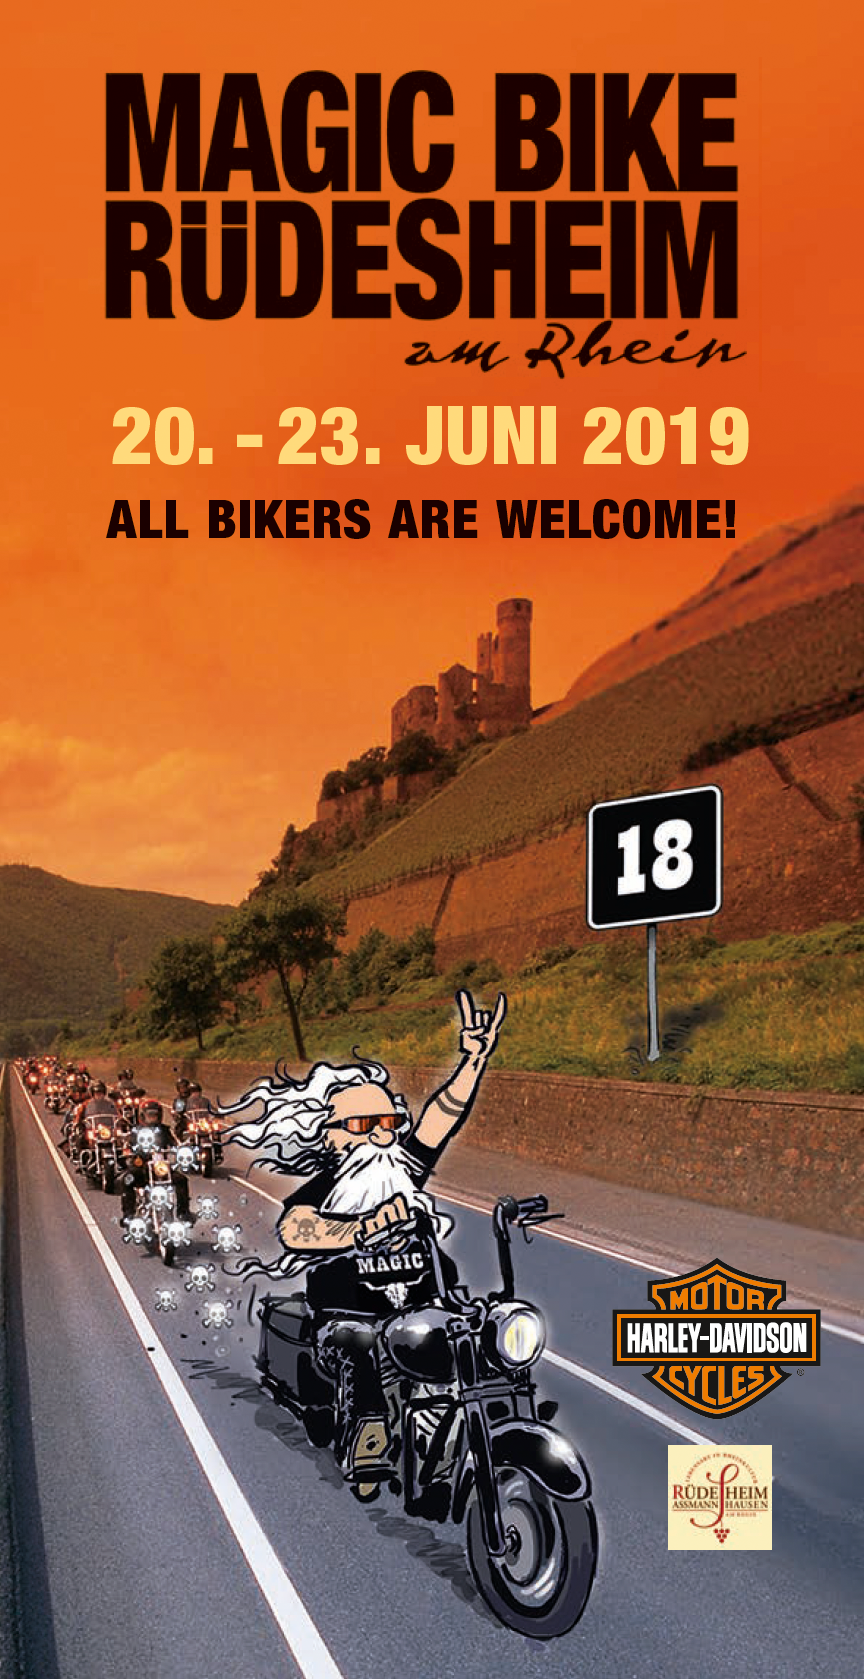 Magic Bike Rüdesheim 2019 Programmflyer